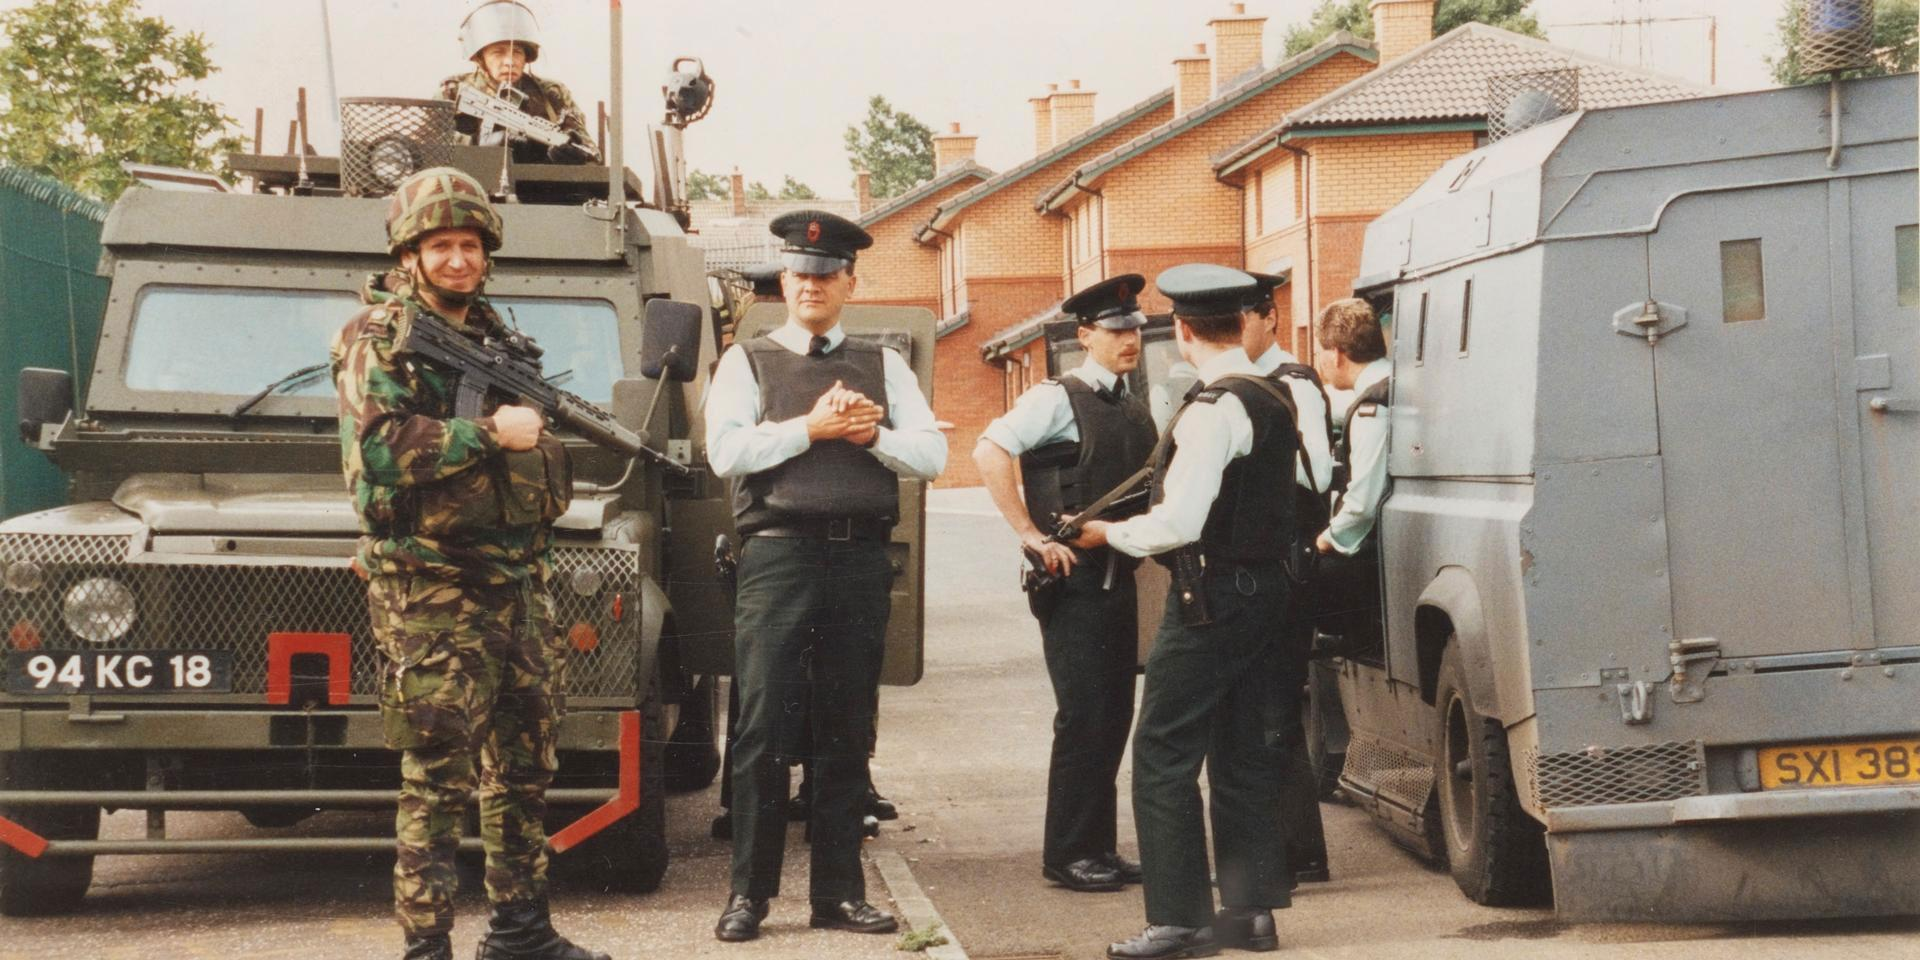 British soldiers on patrol with RUC officers, 1992